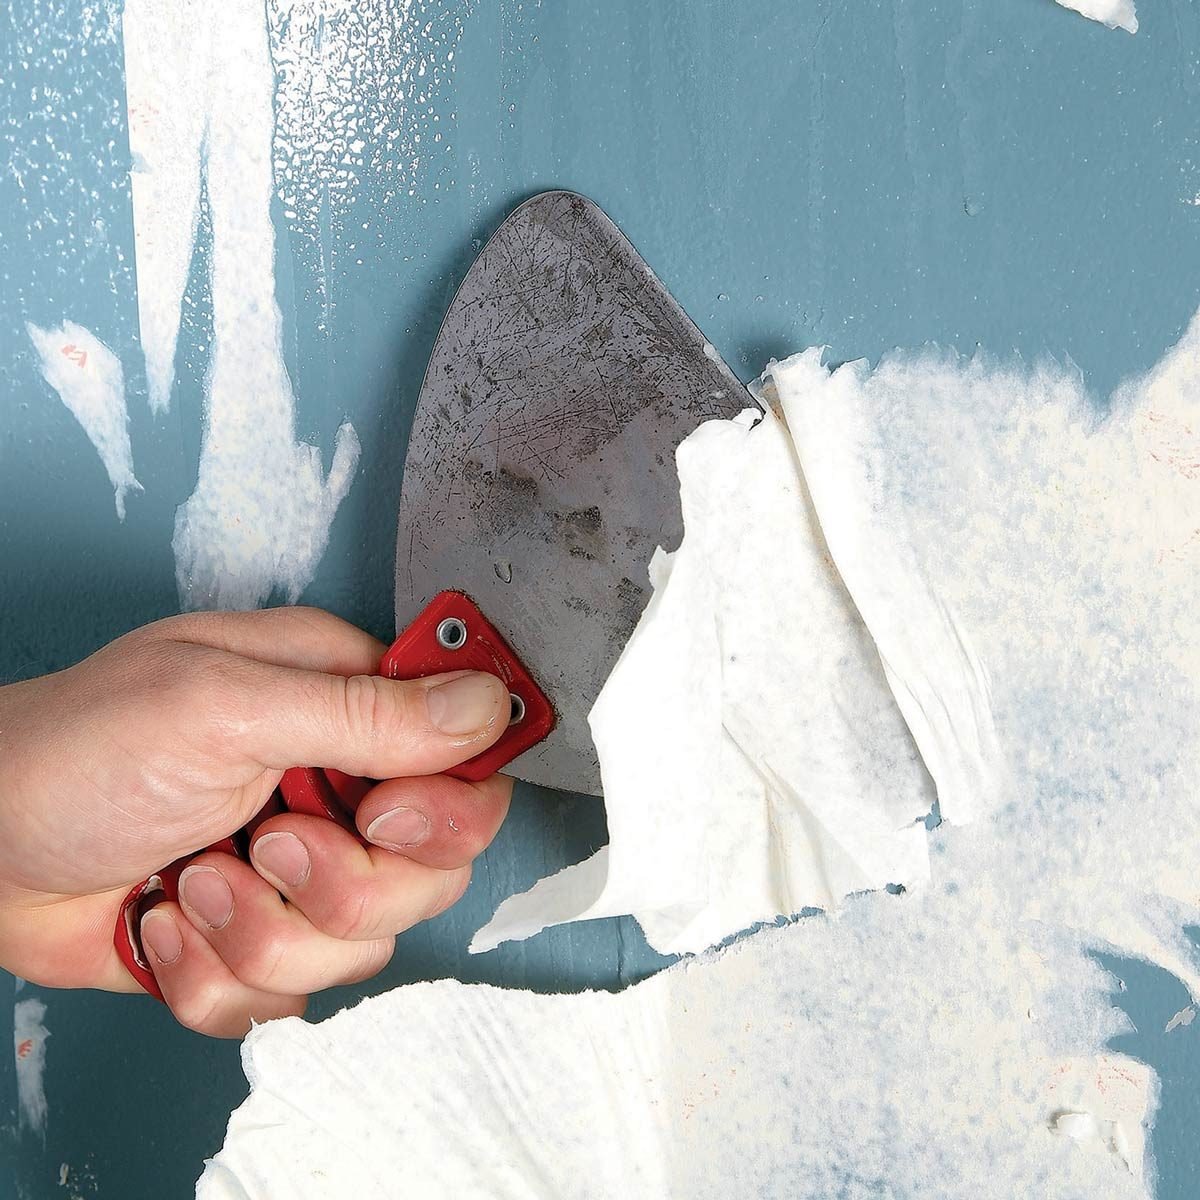 How to Remove Wallpaper - The Best Way